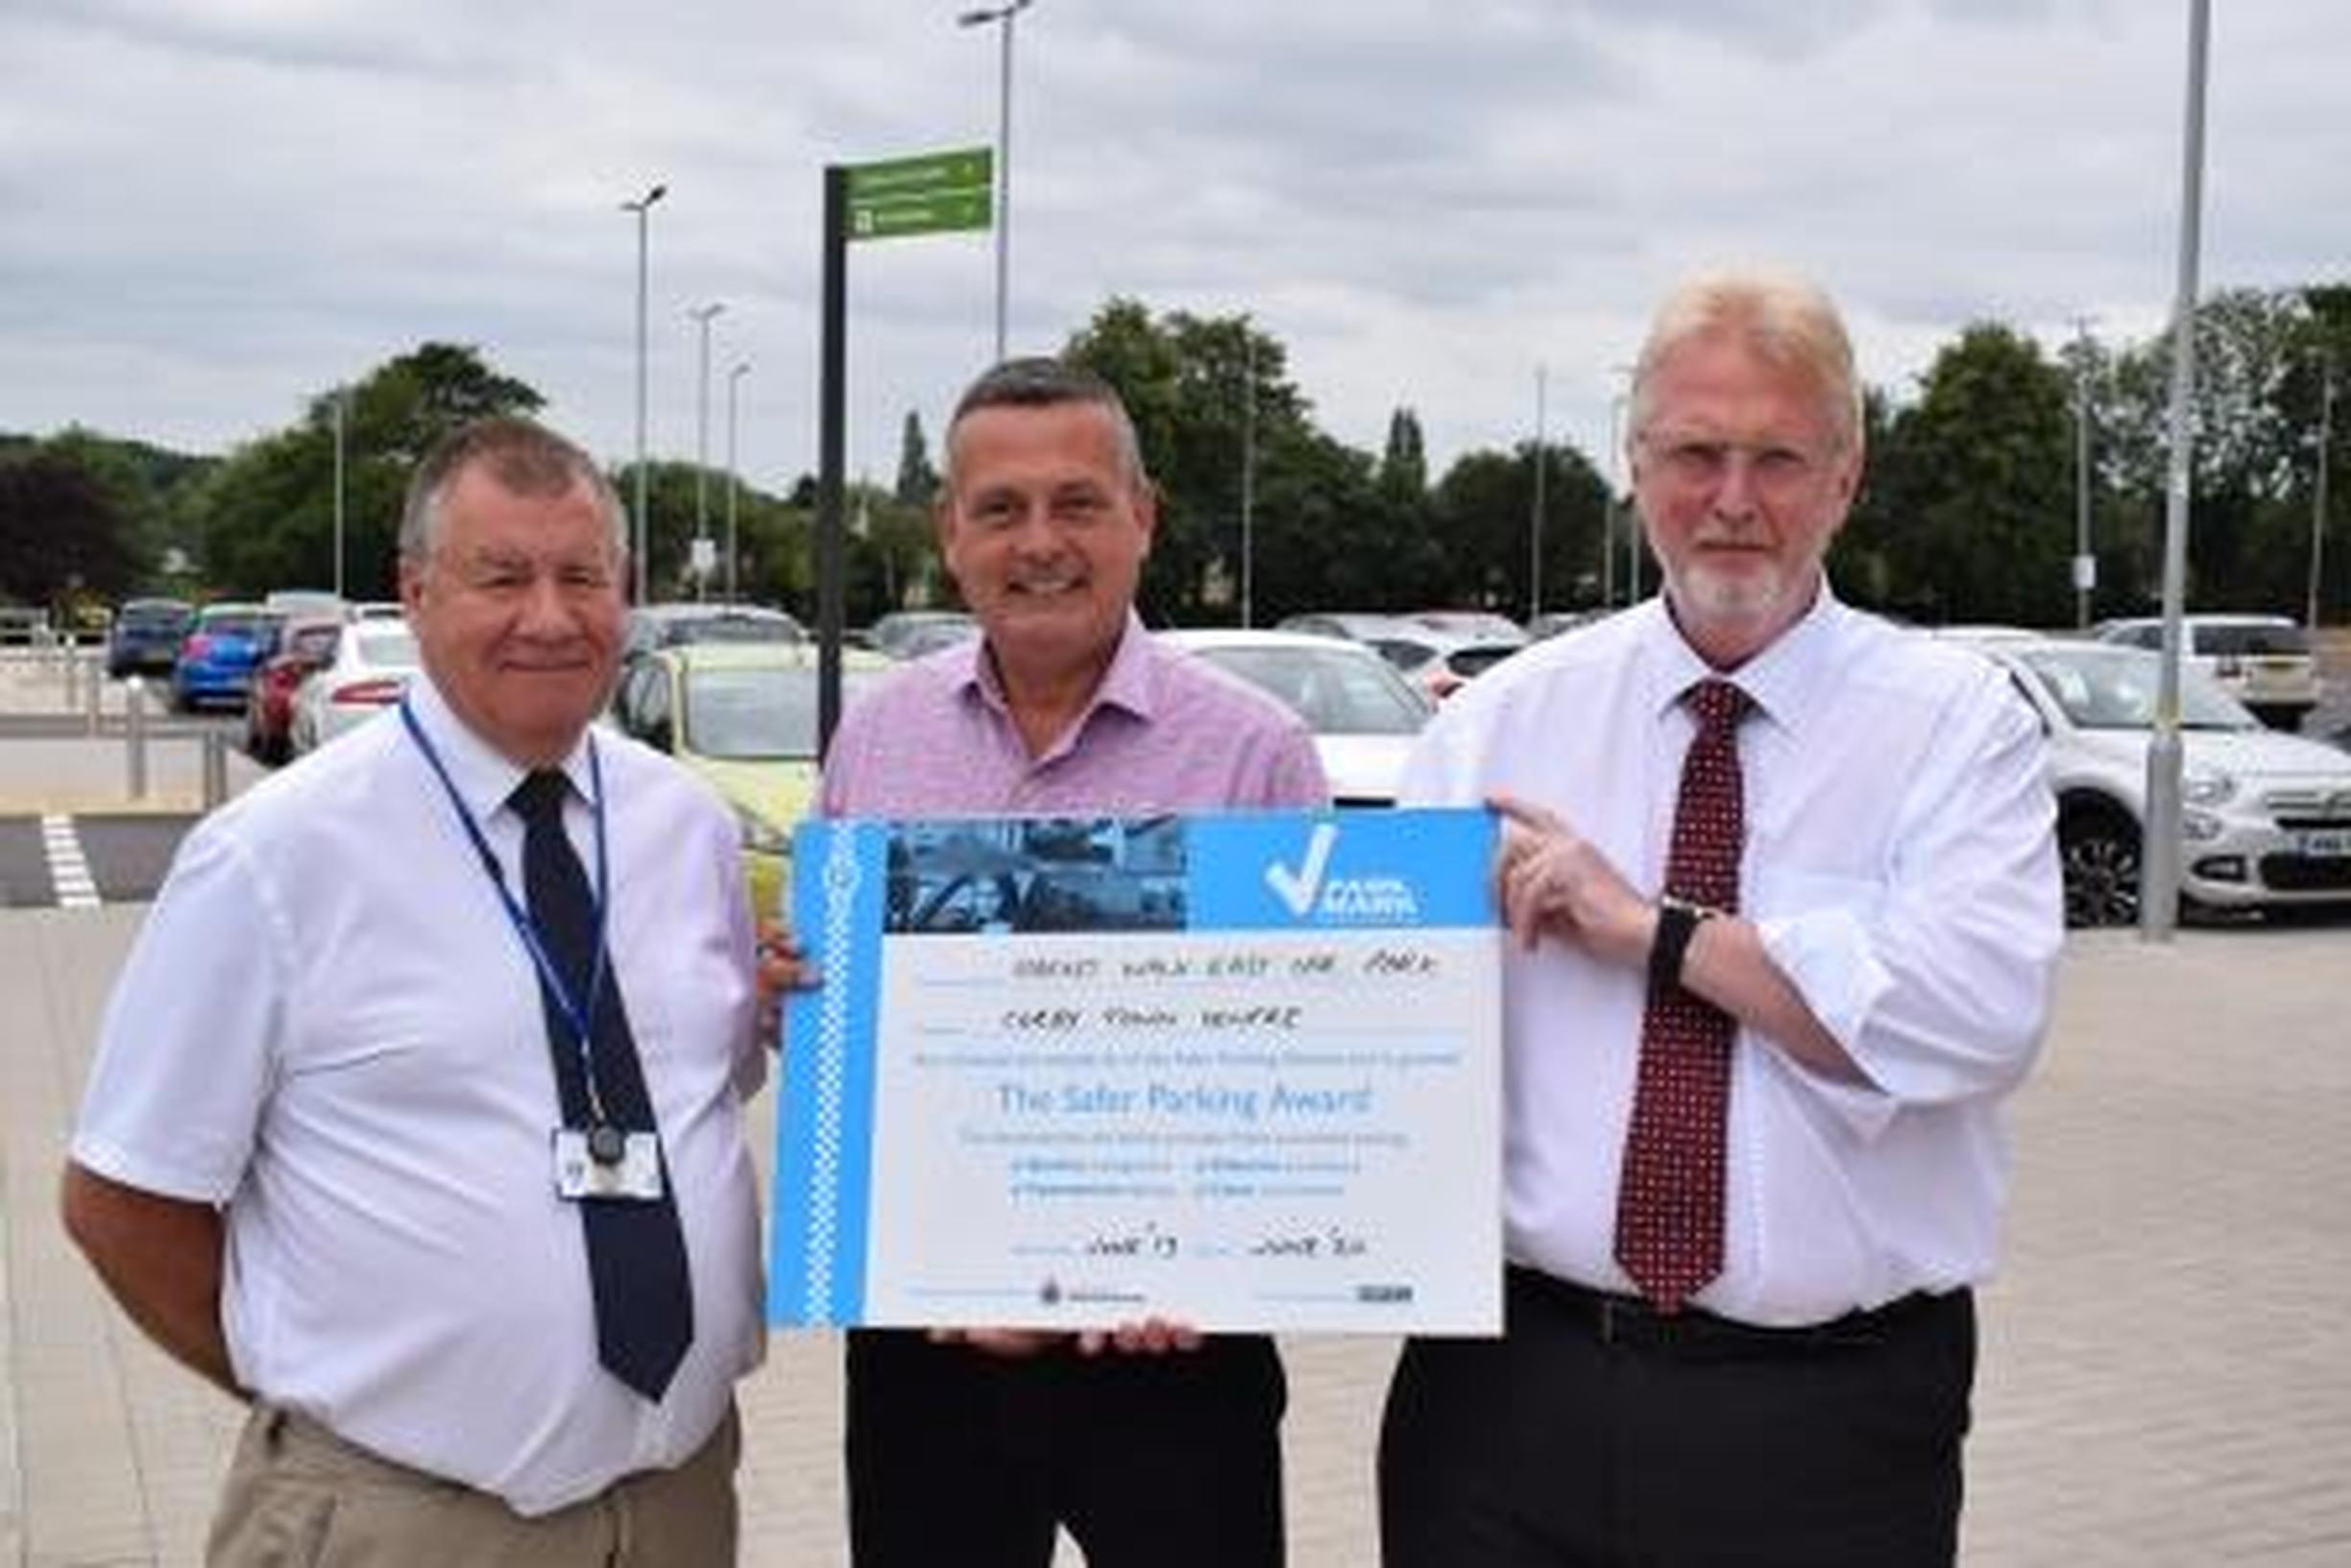 Daniel Pickard (centre director), Richard Wilson (Northamptonshire Park Mark assessor) and Peter Gravells (BPA area manager)